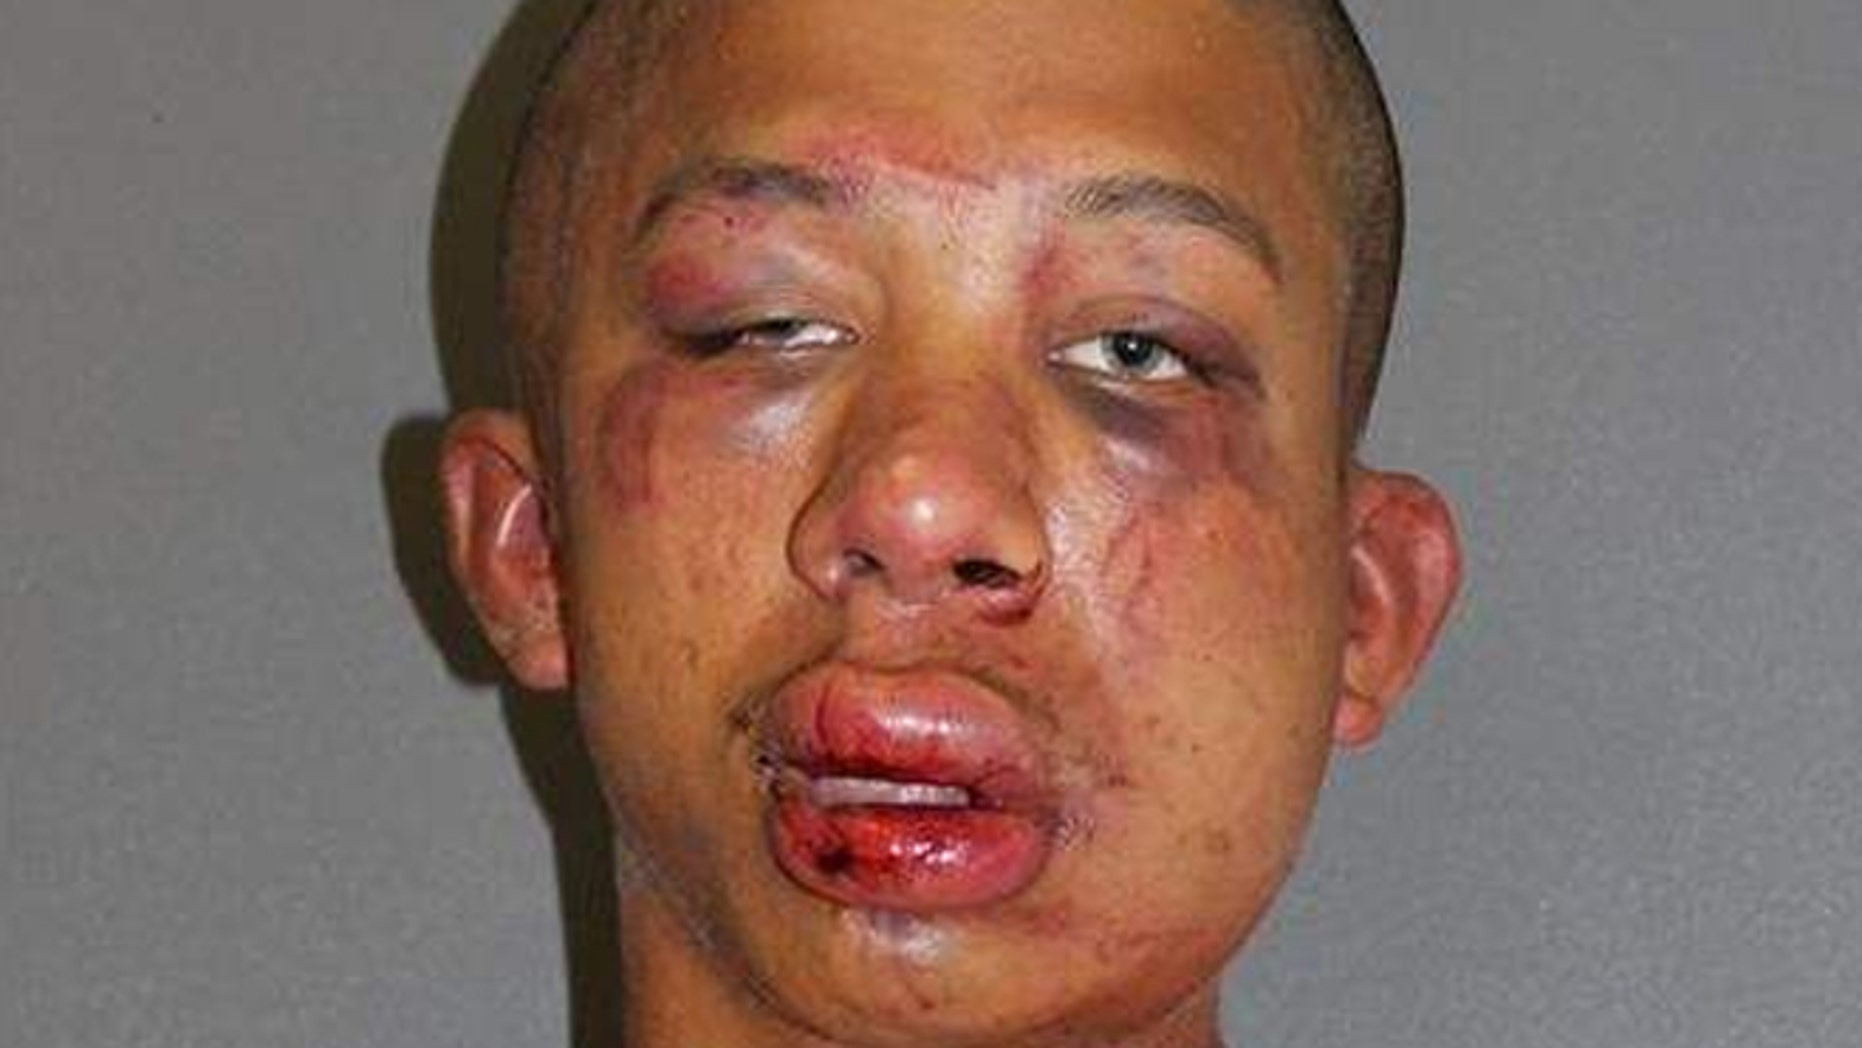 Florida dad beats man he found allegedly raping his son, report says